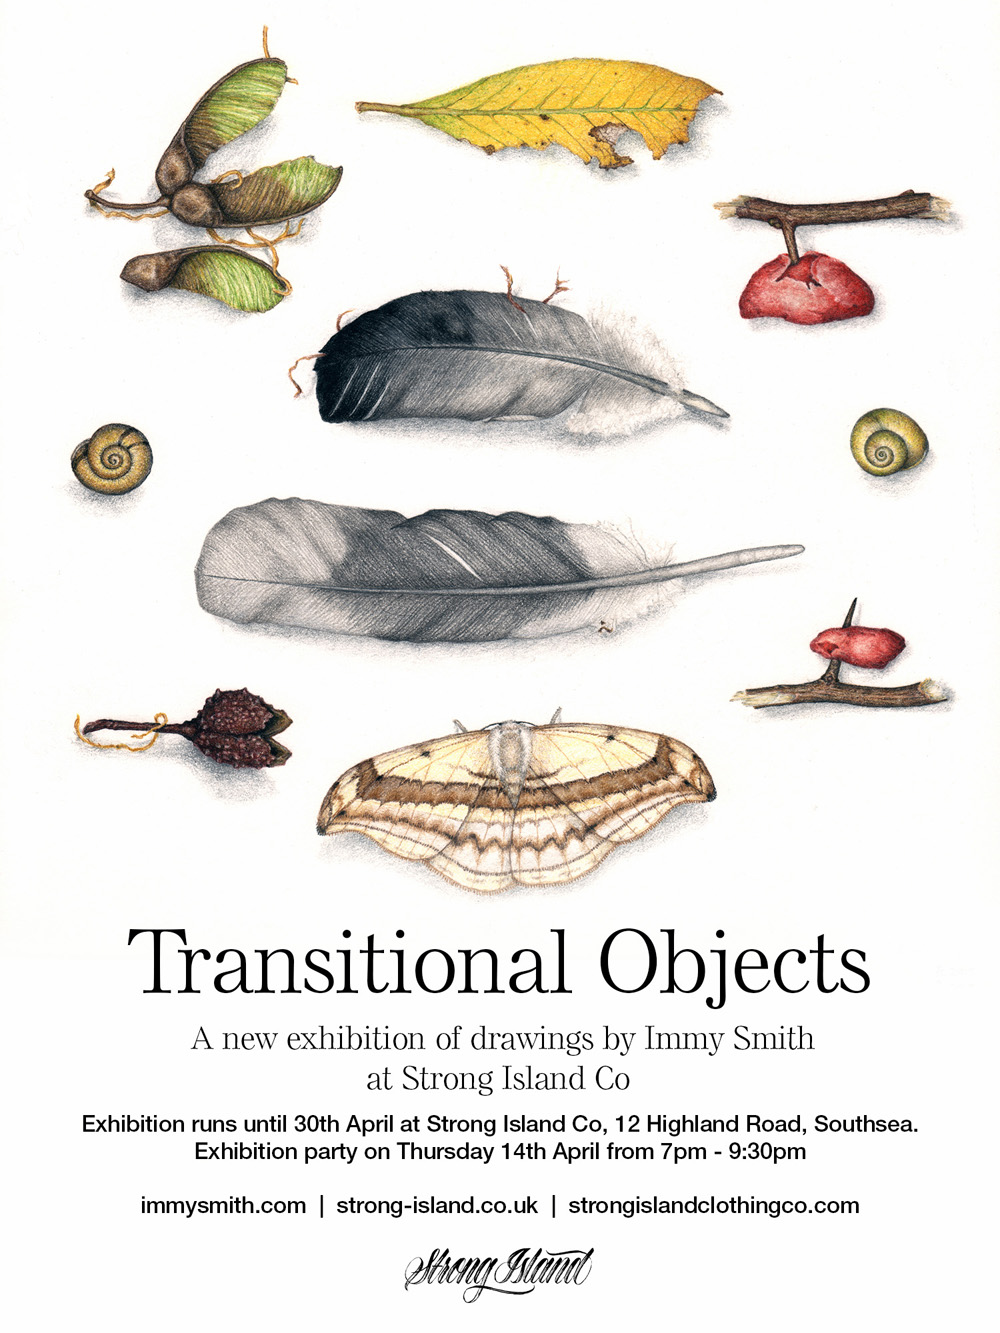 Exhibition flyer for the Transitional objects exhibition